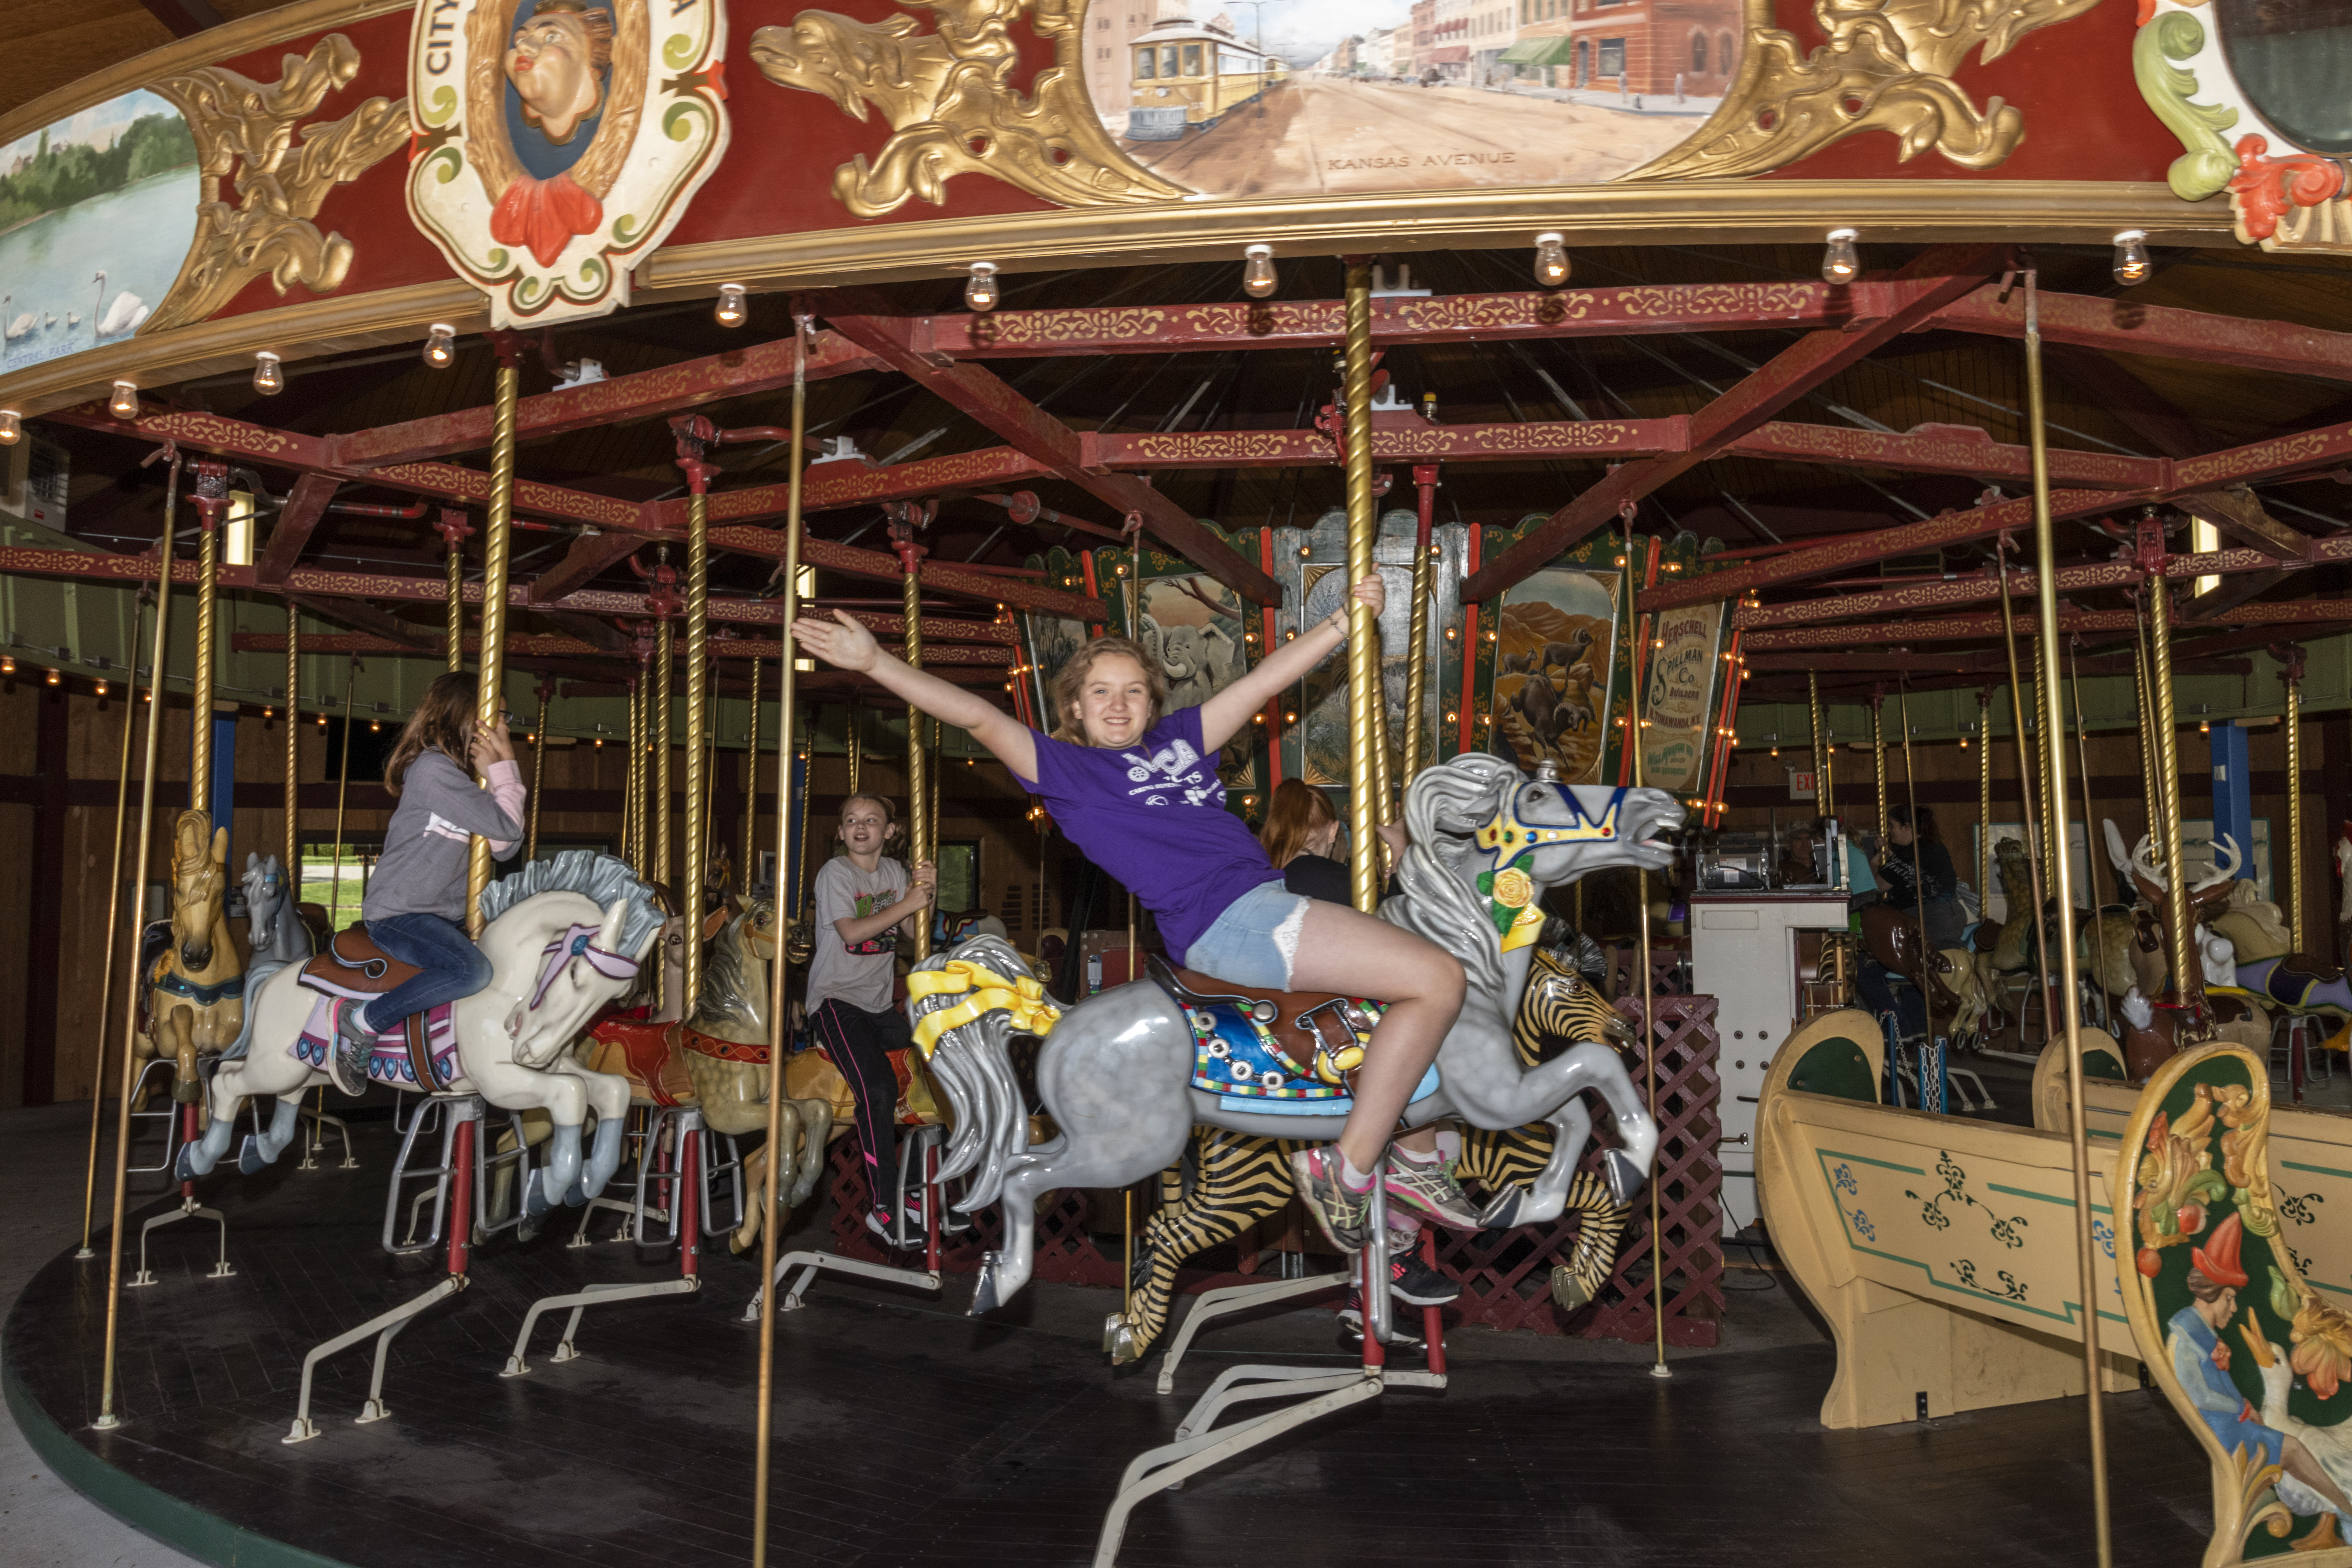 Little girl with outstretched hands riding carousel